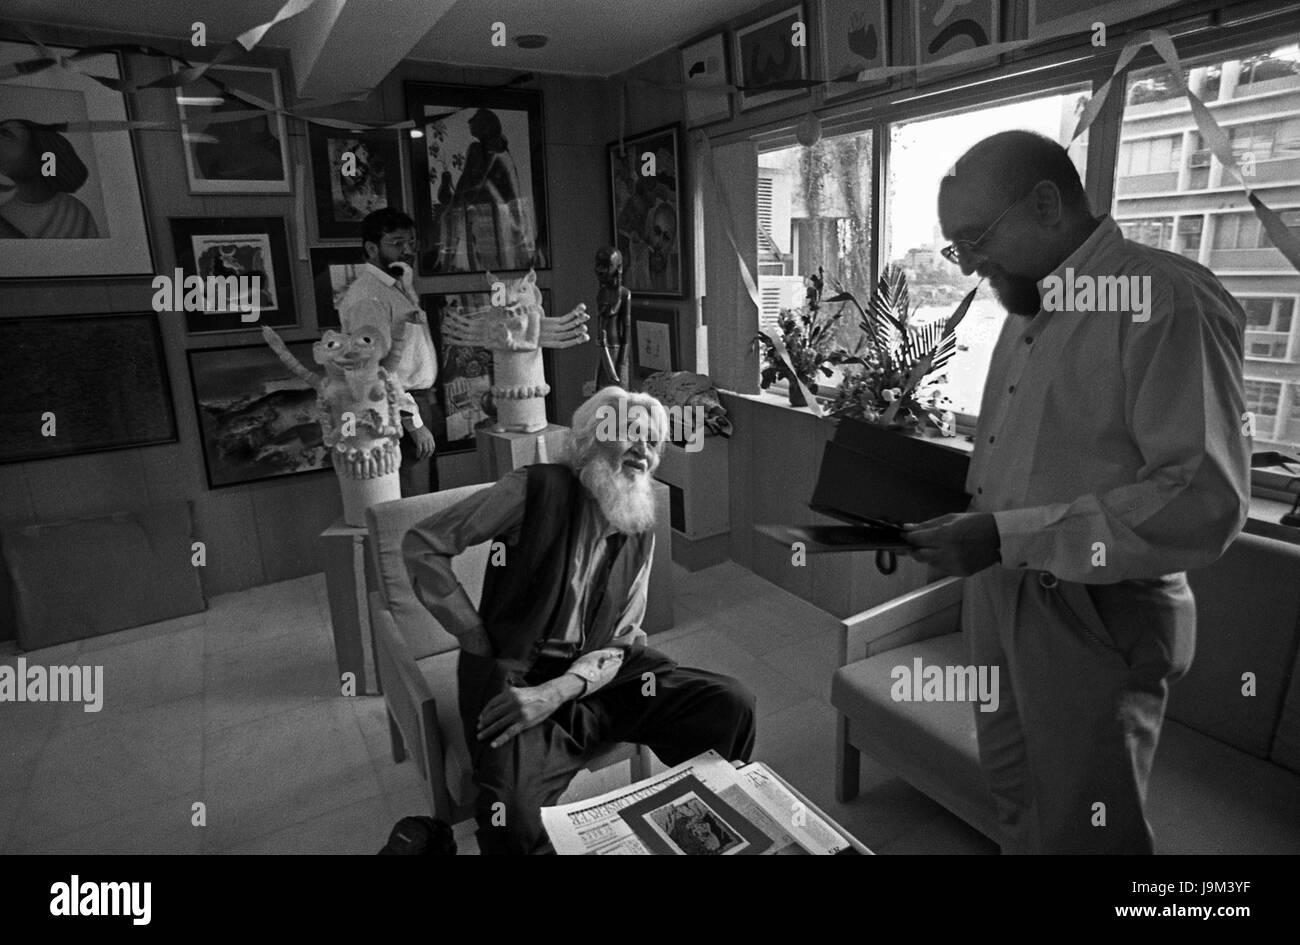 pritish nandy and mf husain, sunday observer officer, mumbai, maharashtra, India, Asia - Stock Image